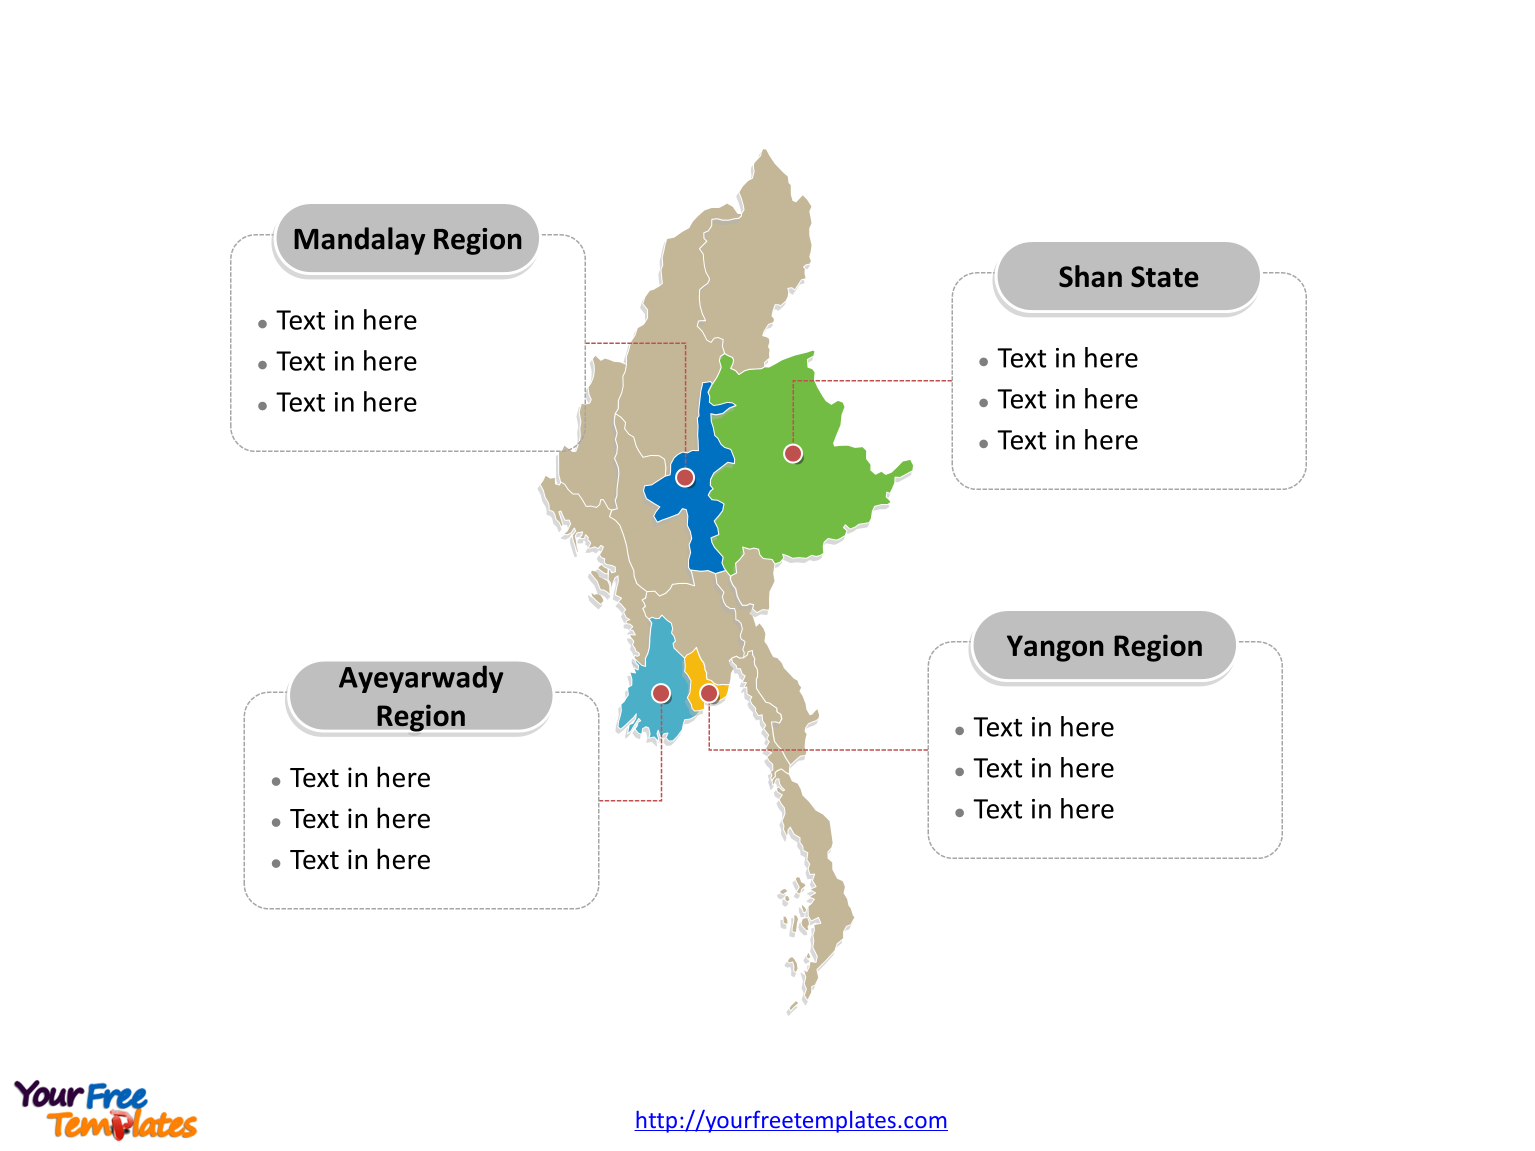 Myanmar Political map labeled with major regions and states